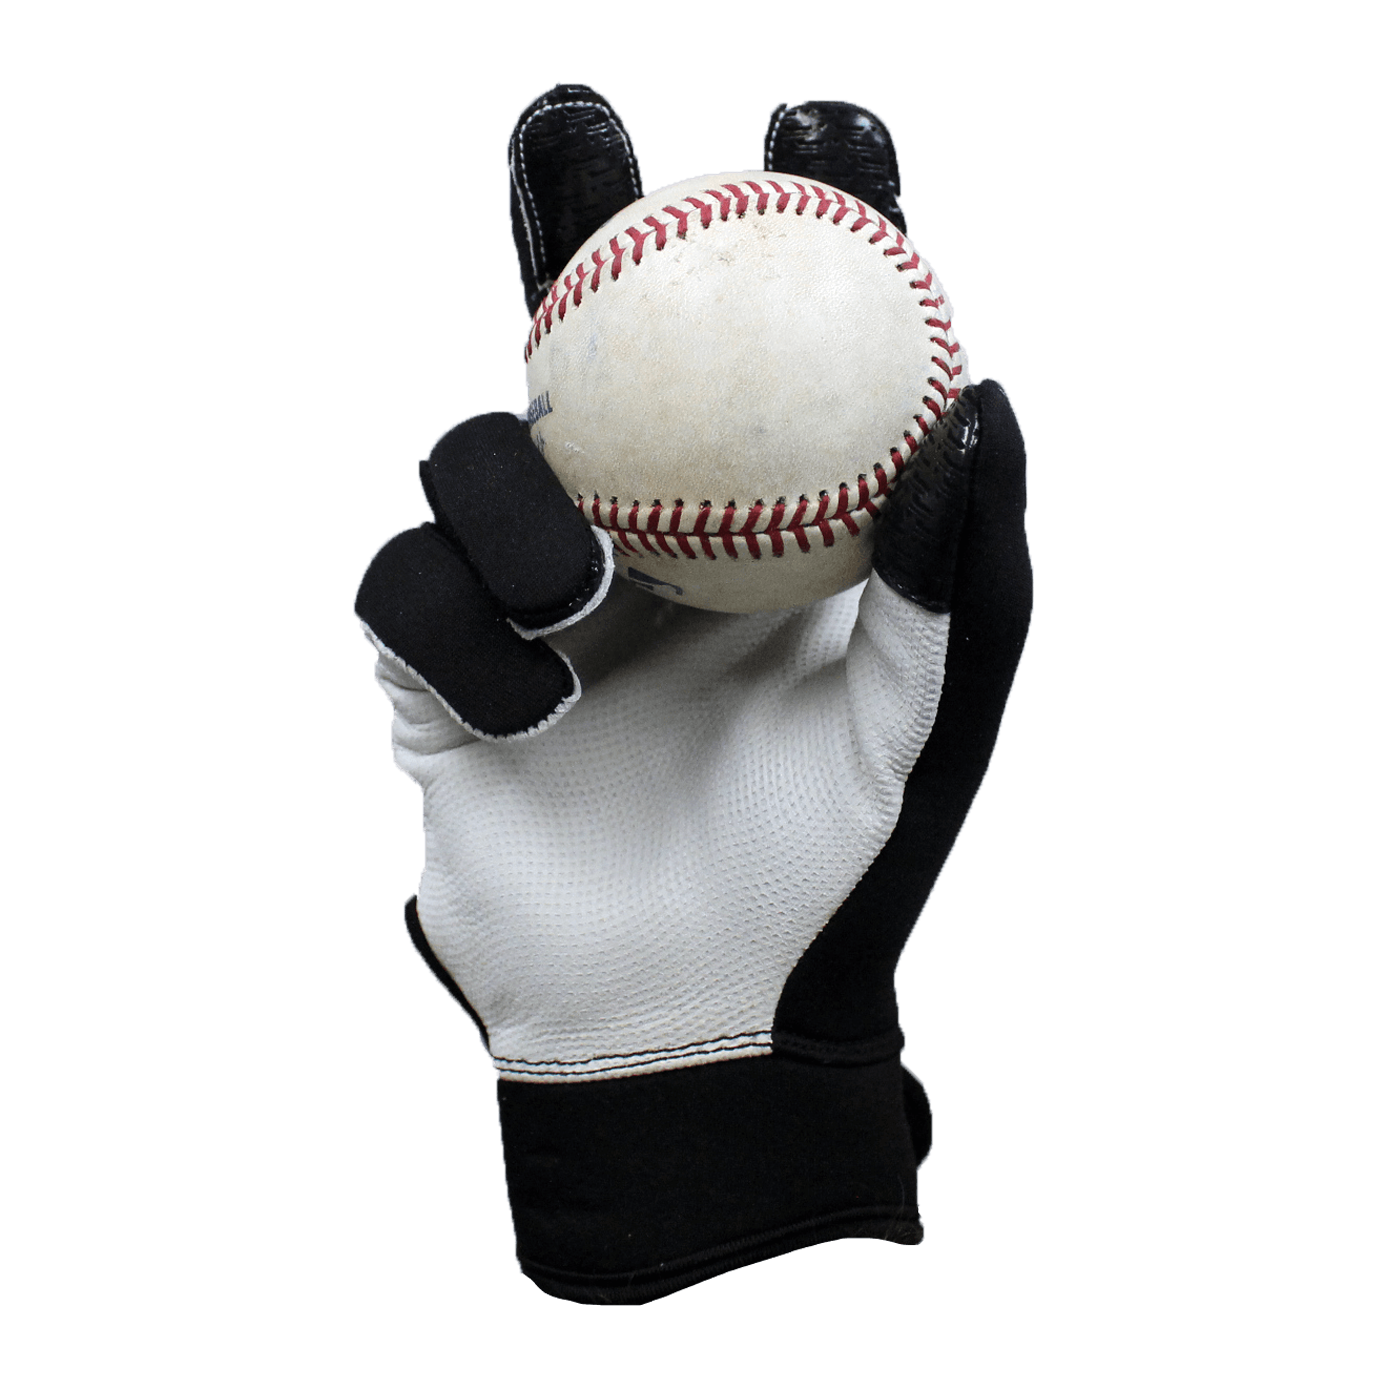 YOUTH Baseball Cold-Weather Throwing Glove 2.0